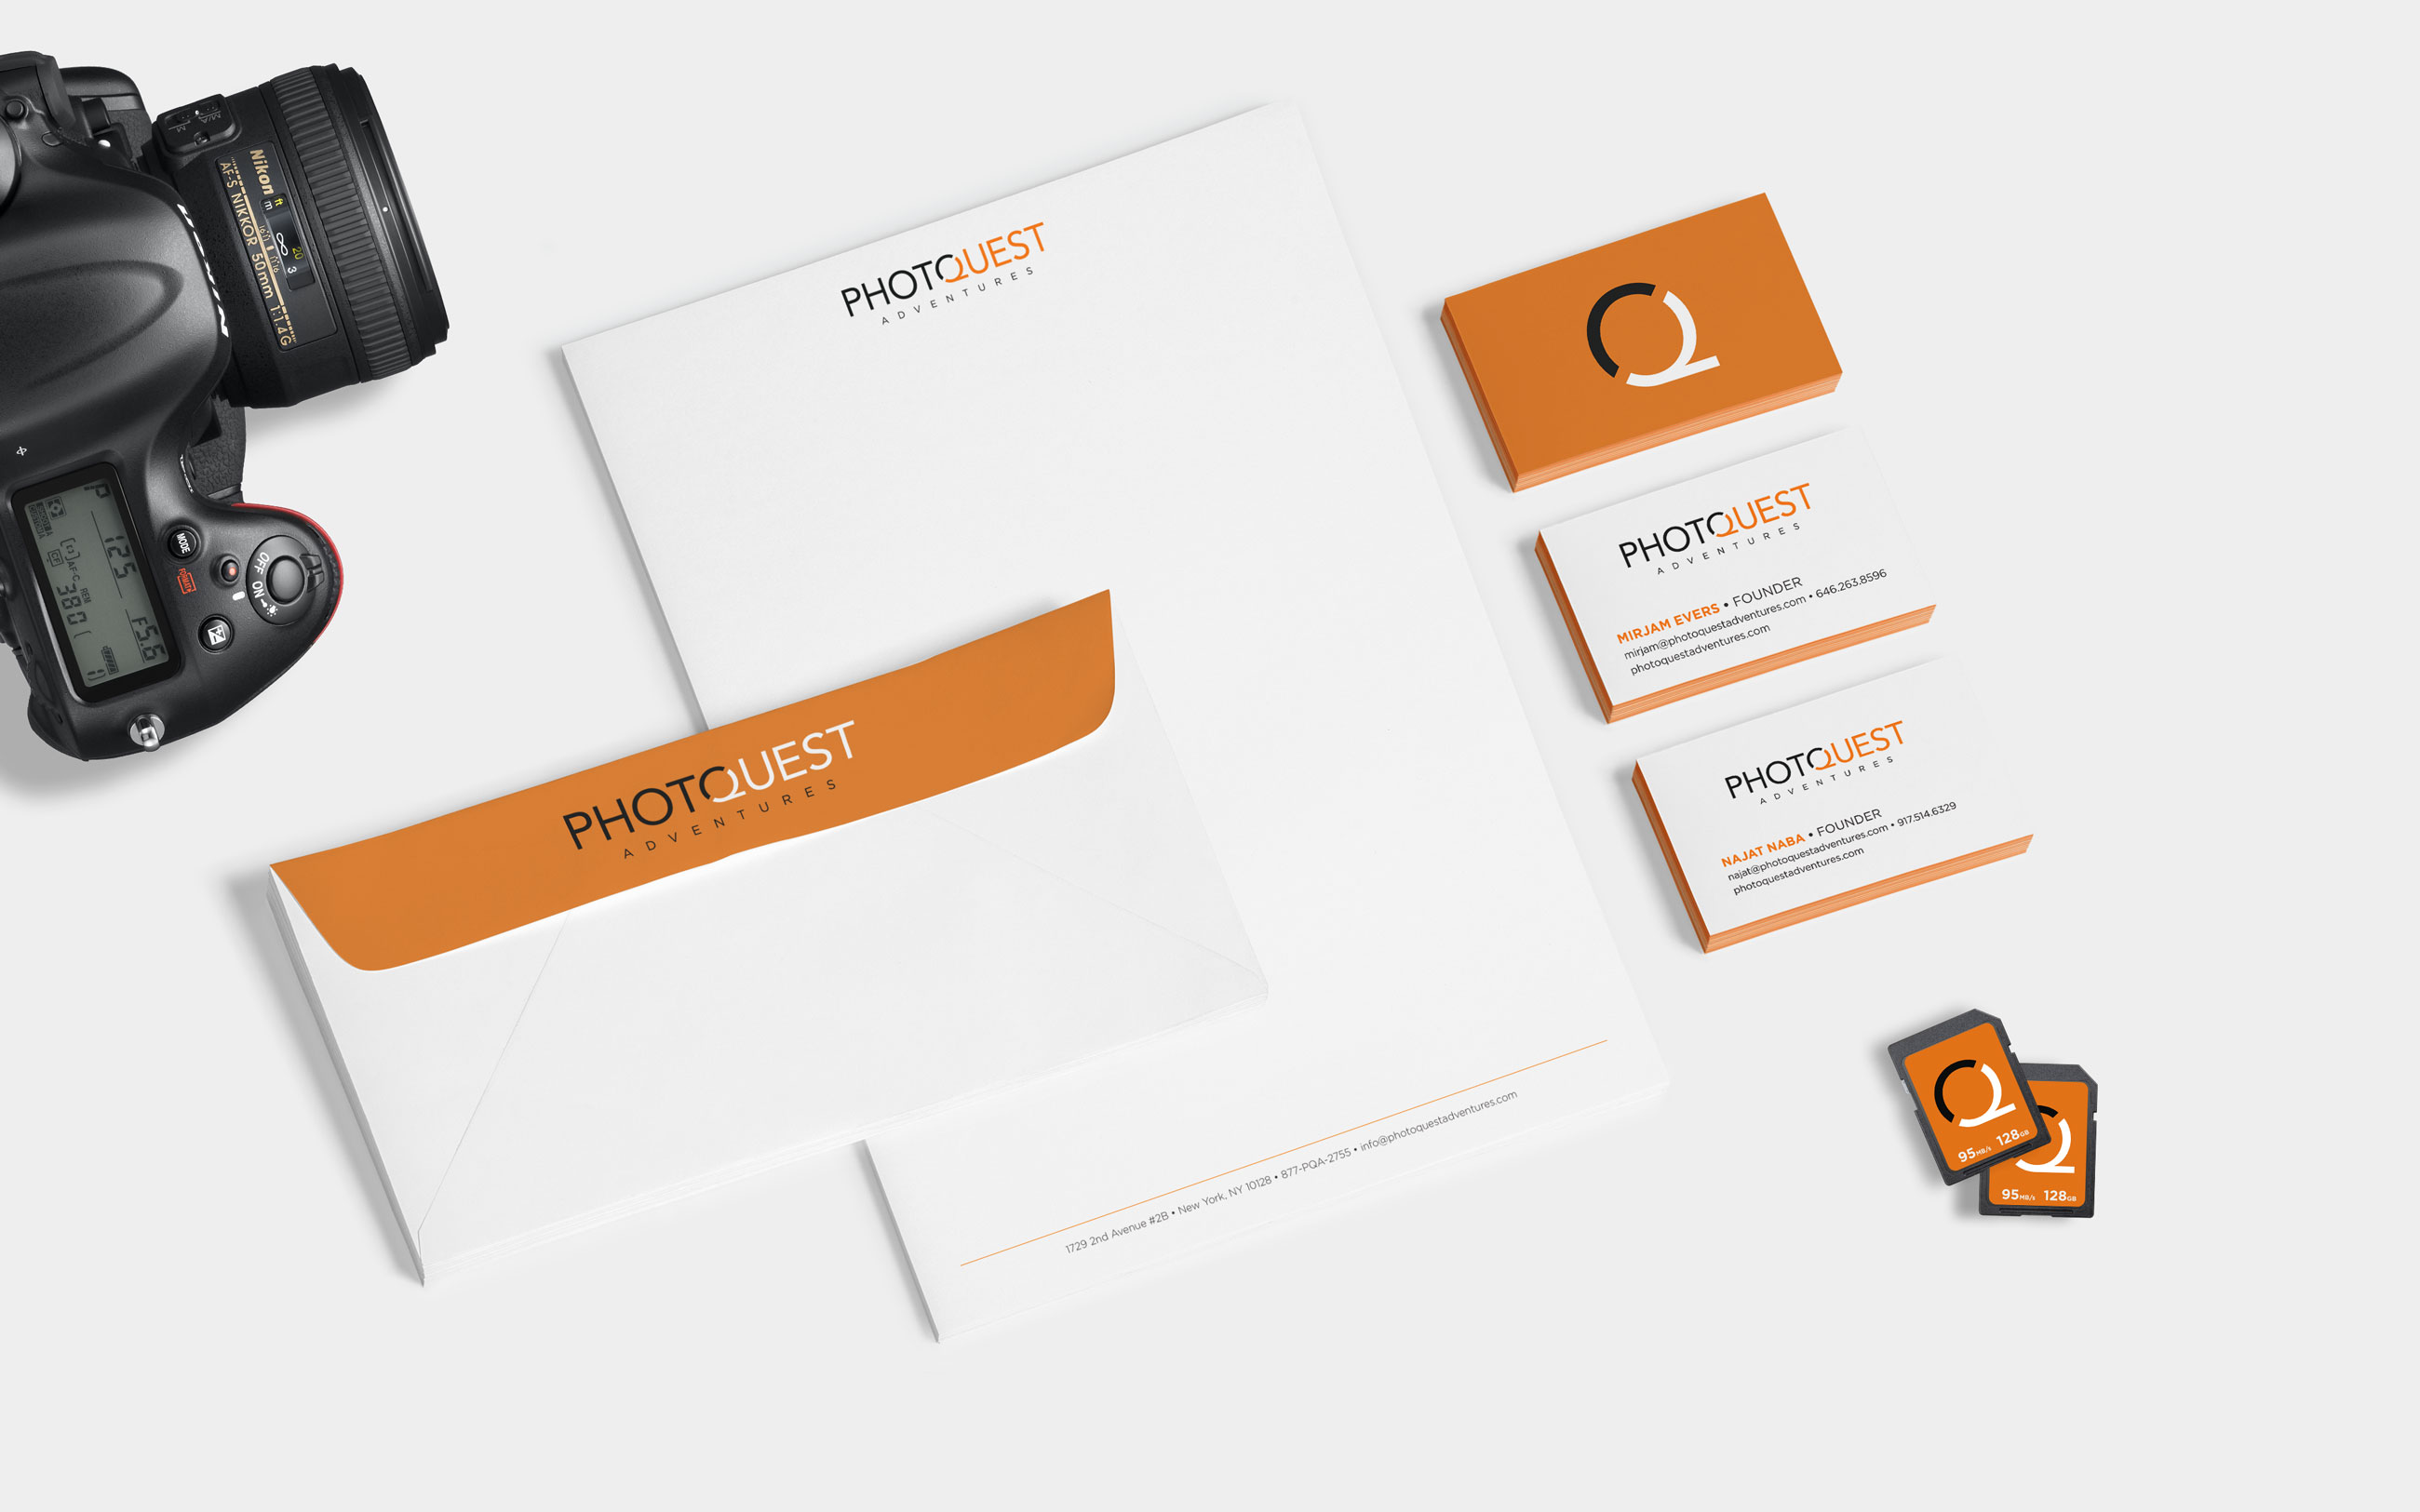 PhotoQuest collateral